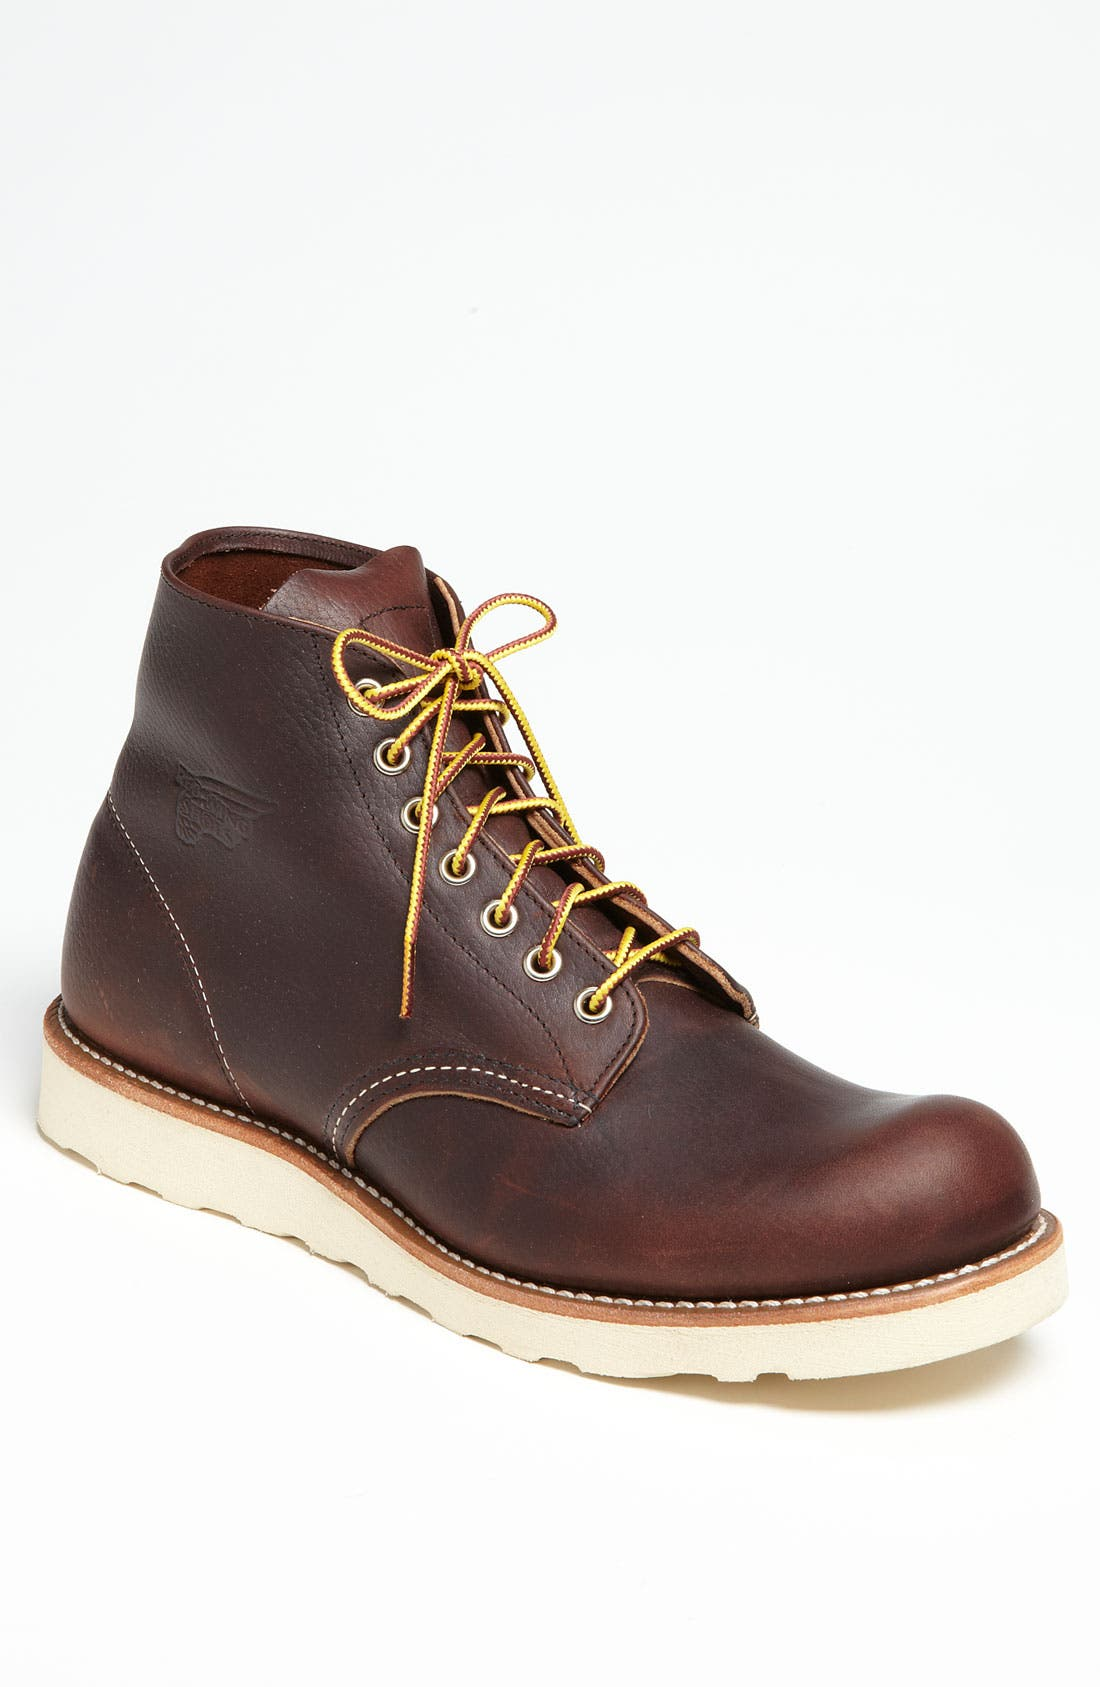 '8196' Round Toe Boot, Main, color, 200